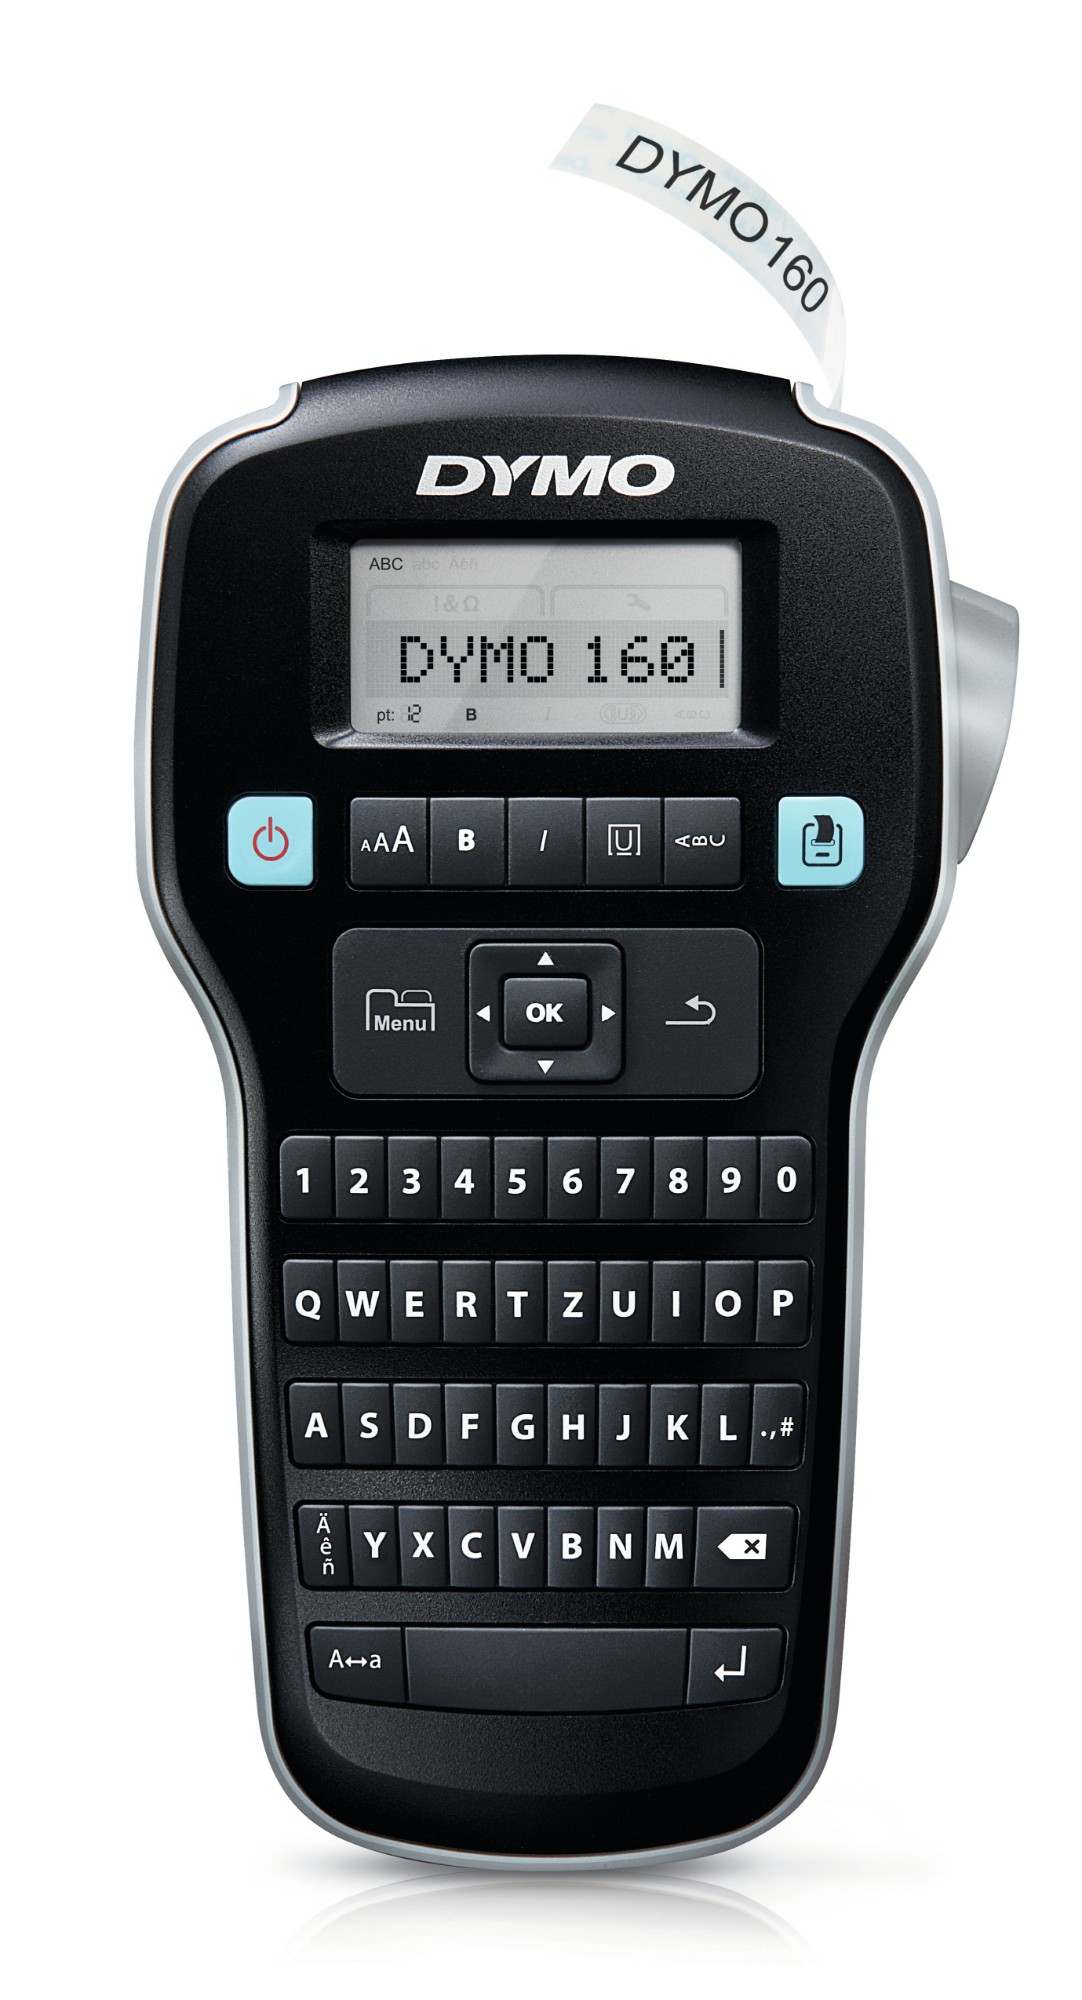 DYMO LabelManager ™ 160 QWERTZ label printer